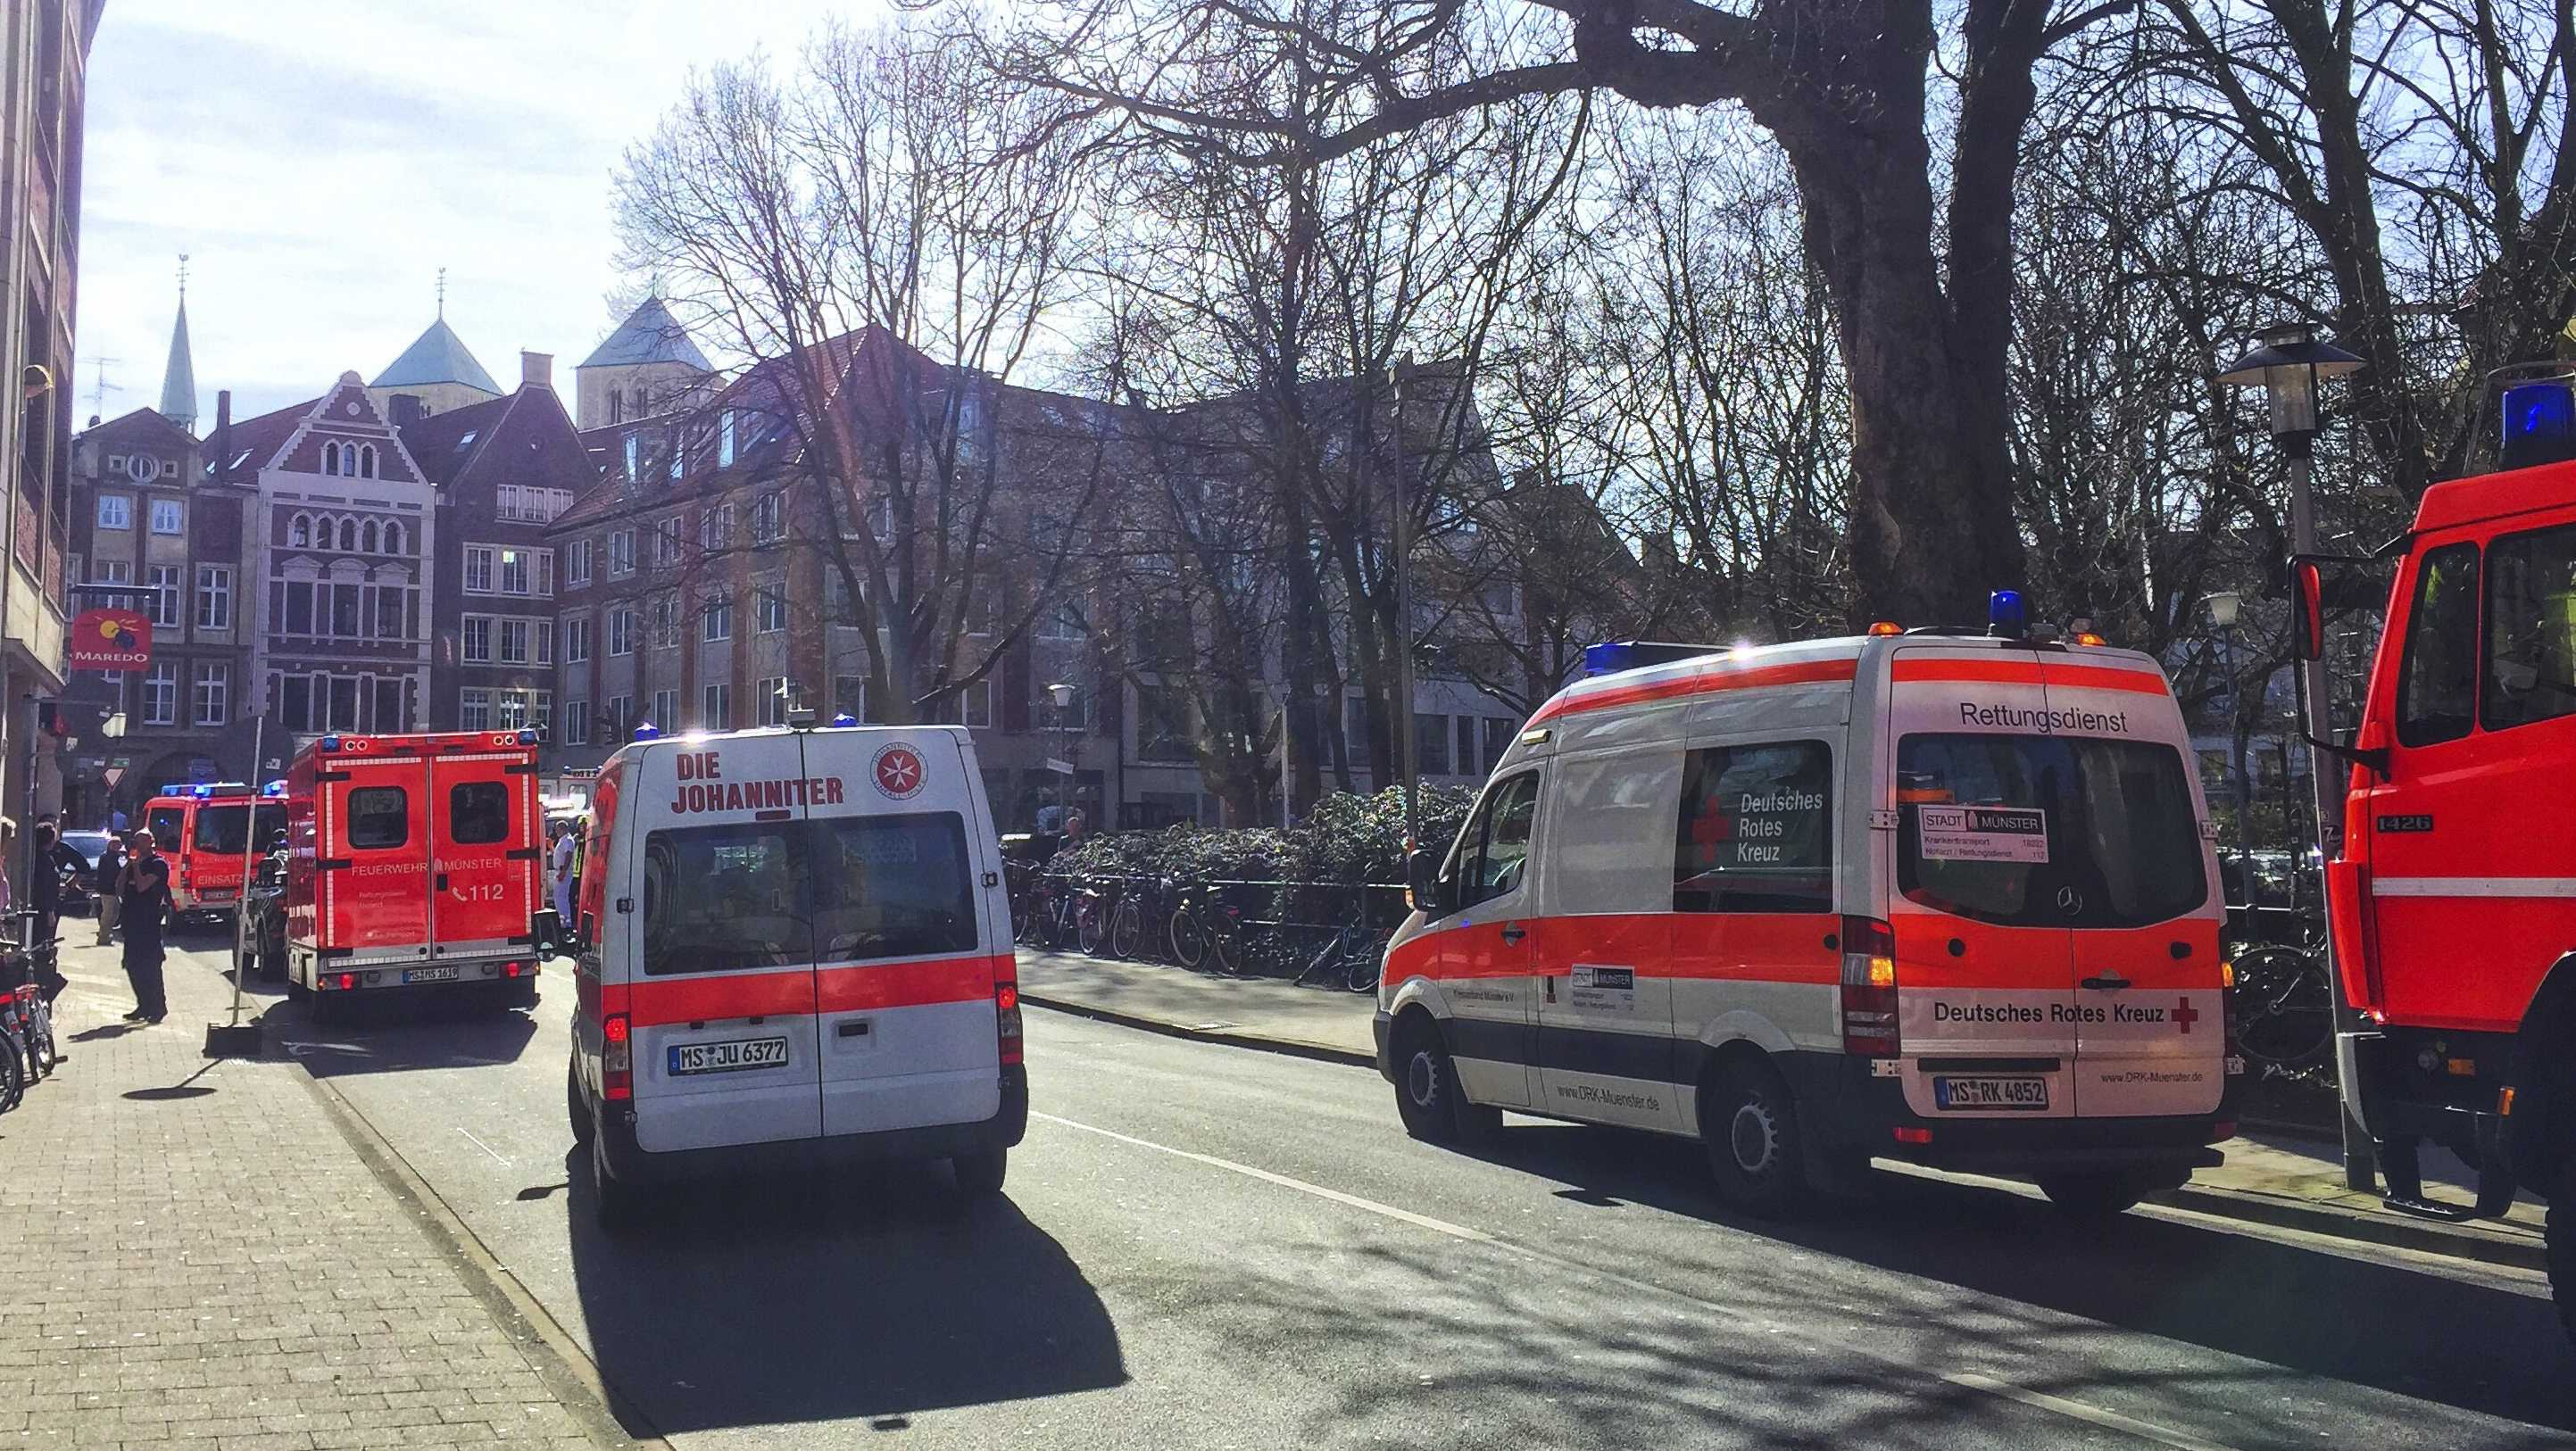 Ambulances stand in downtown Muenster, Germany, Saturday, April 7, 2018.